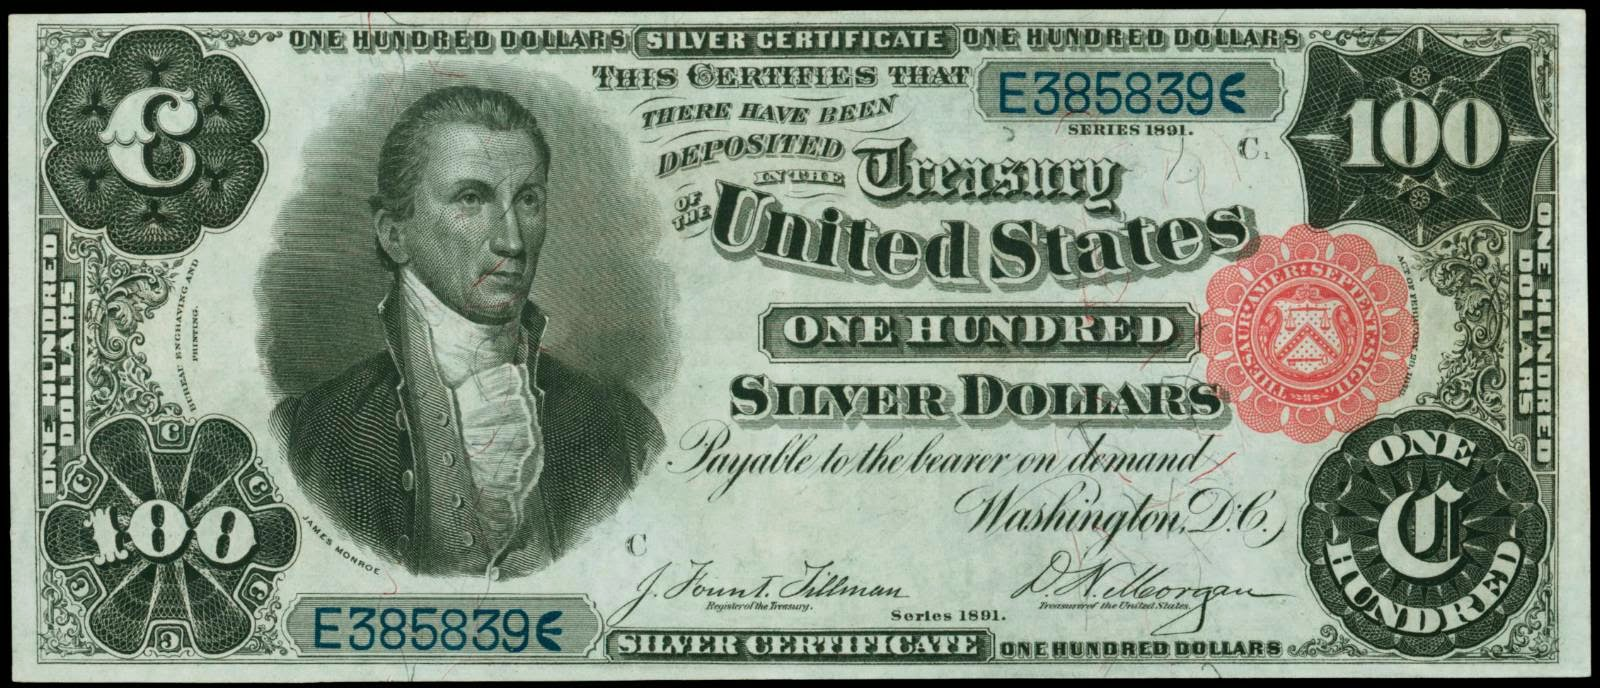 1891 One Hundred Dollar Silver Certificate|World Banknotes & Coins ...